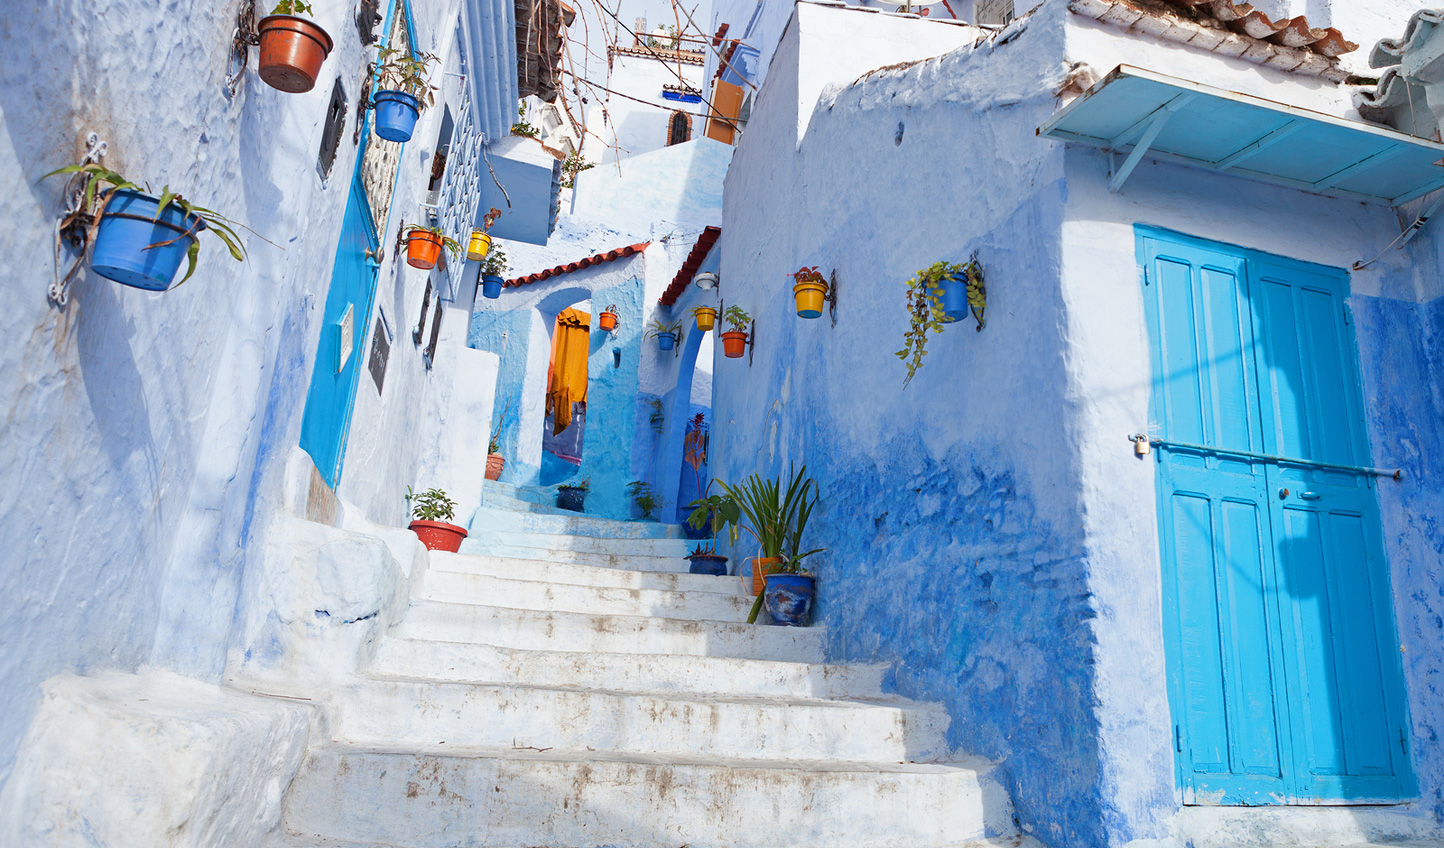 Discover Chefchaouen from every angle